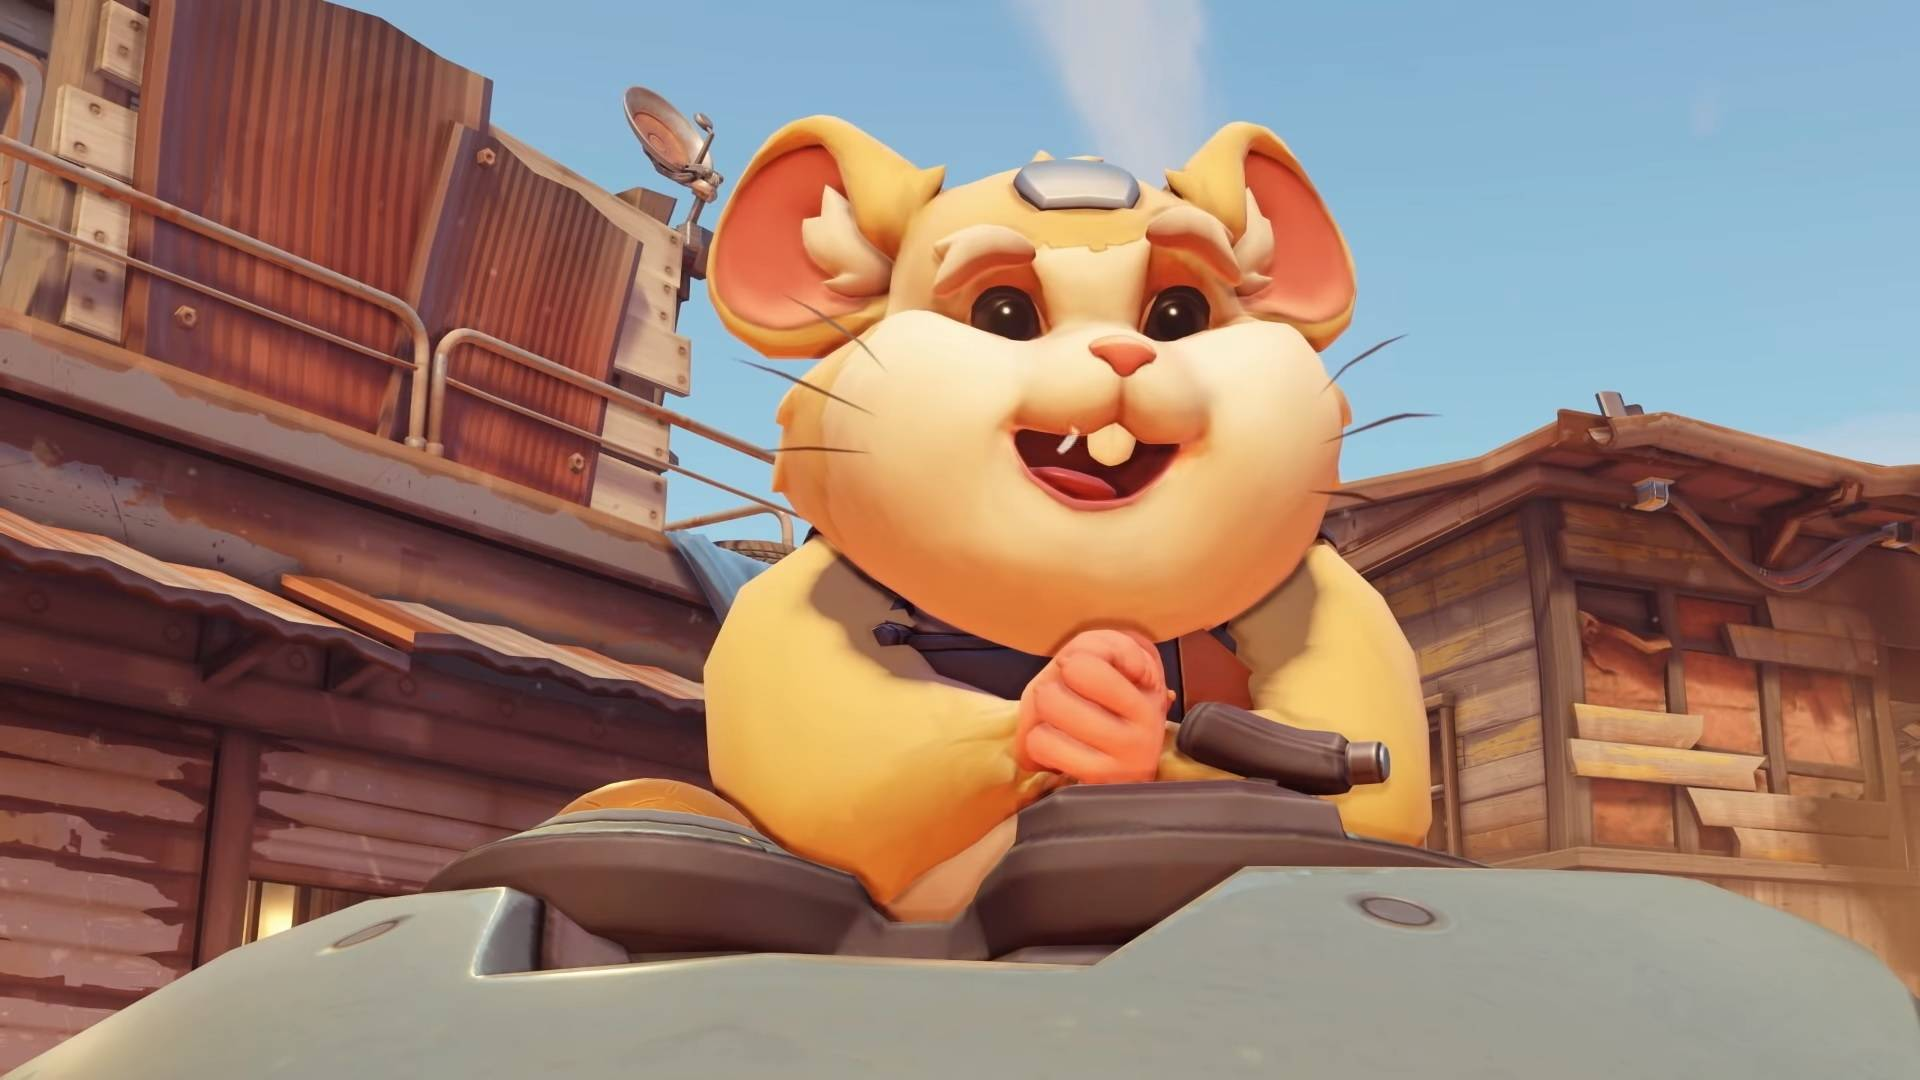 Overwatch Wrecking Ball smiling